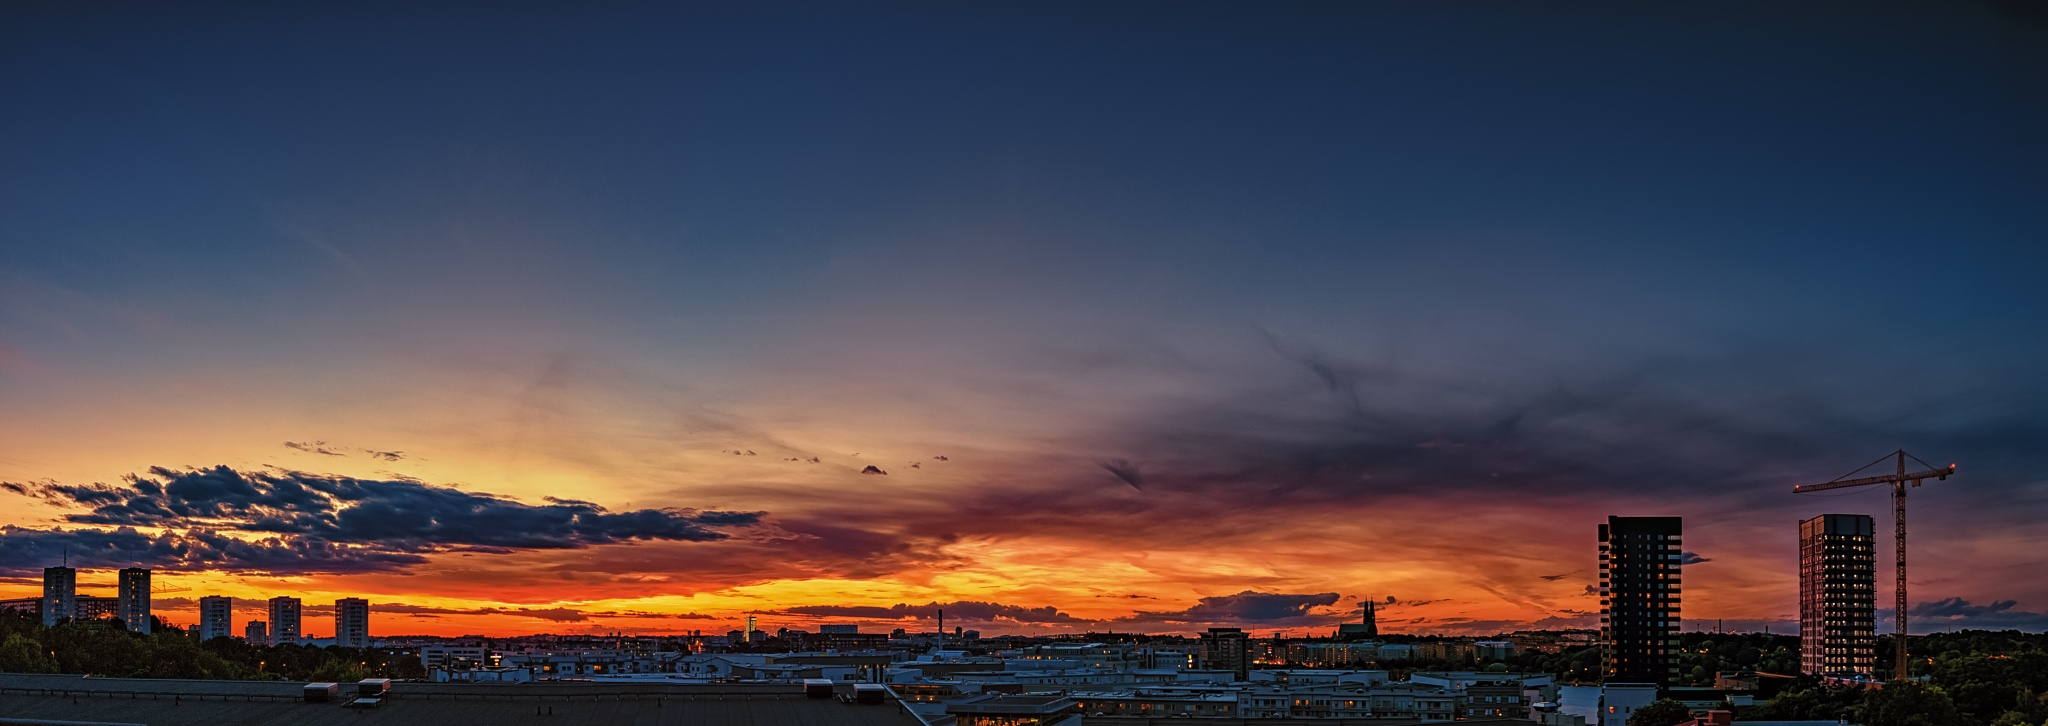 Fire in the sky by Anders Green